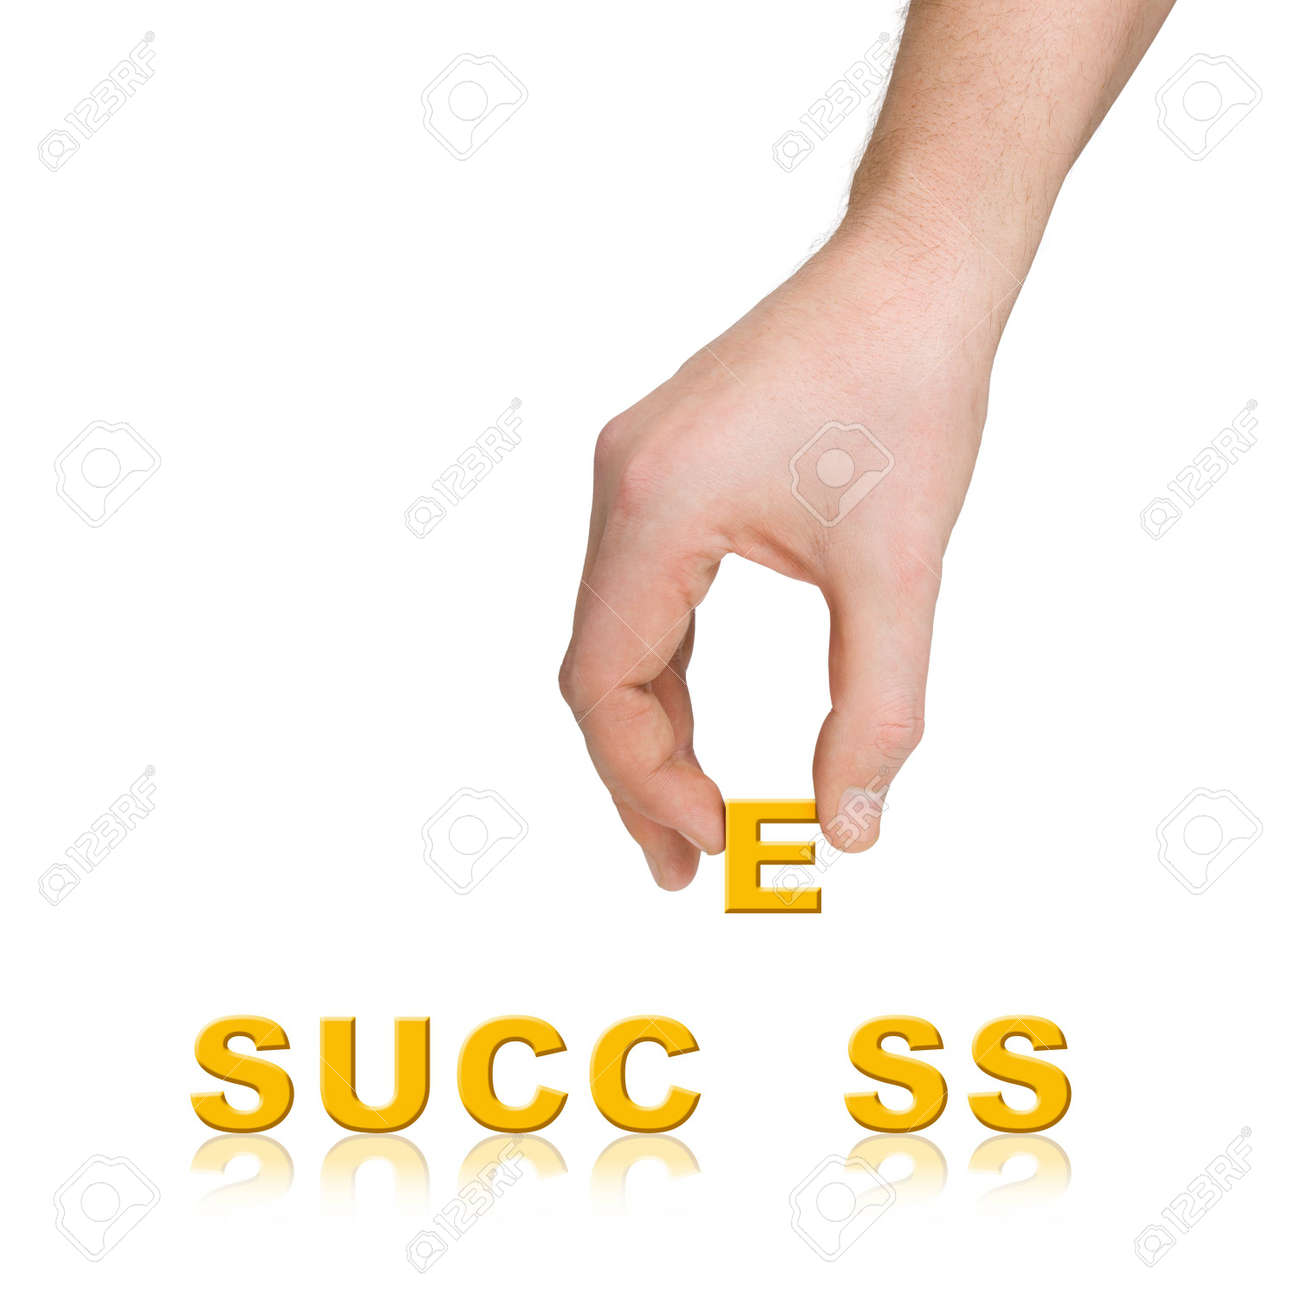 Hand and word Success, business concept, isolated on white background Stock Photo - 2472421